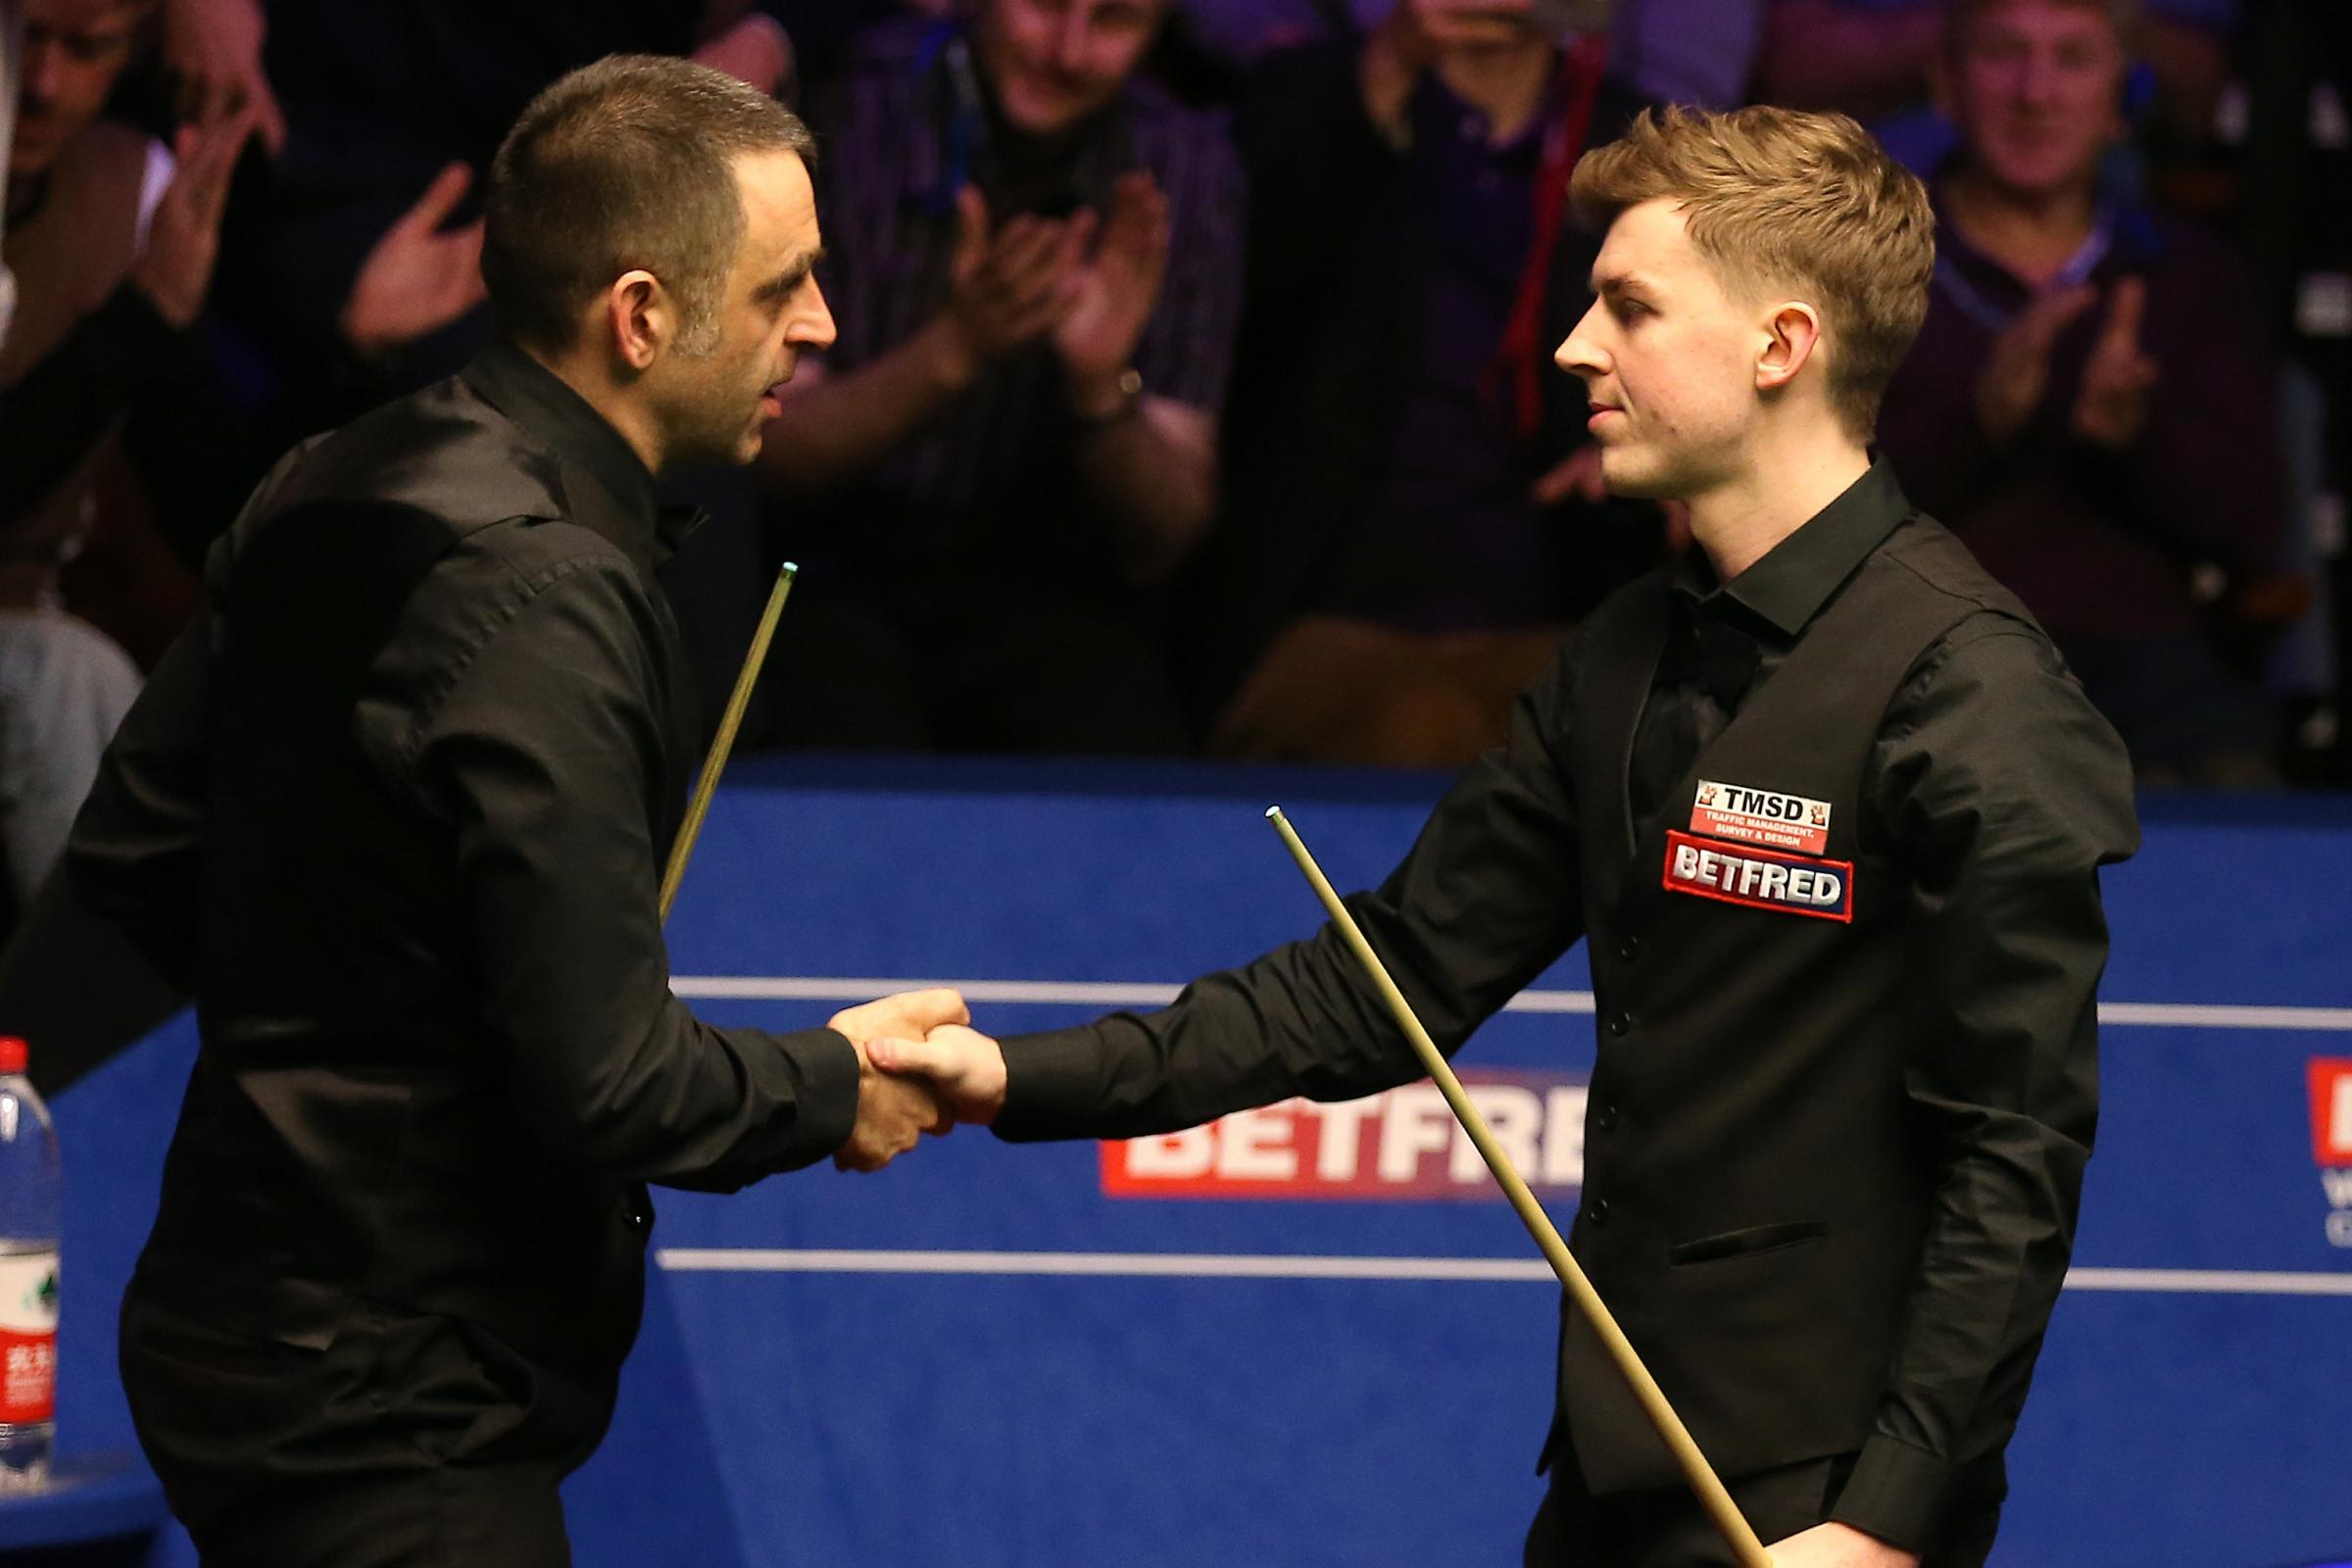 James Cahill, right, is congratulated by Ronnie O'Sullivan